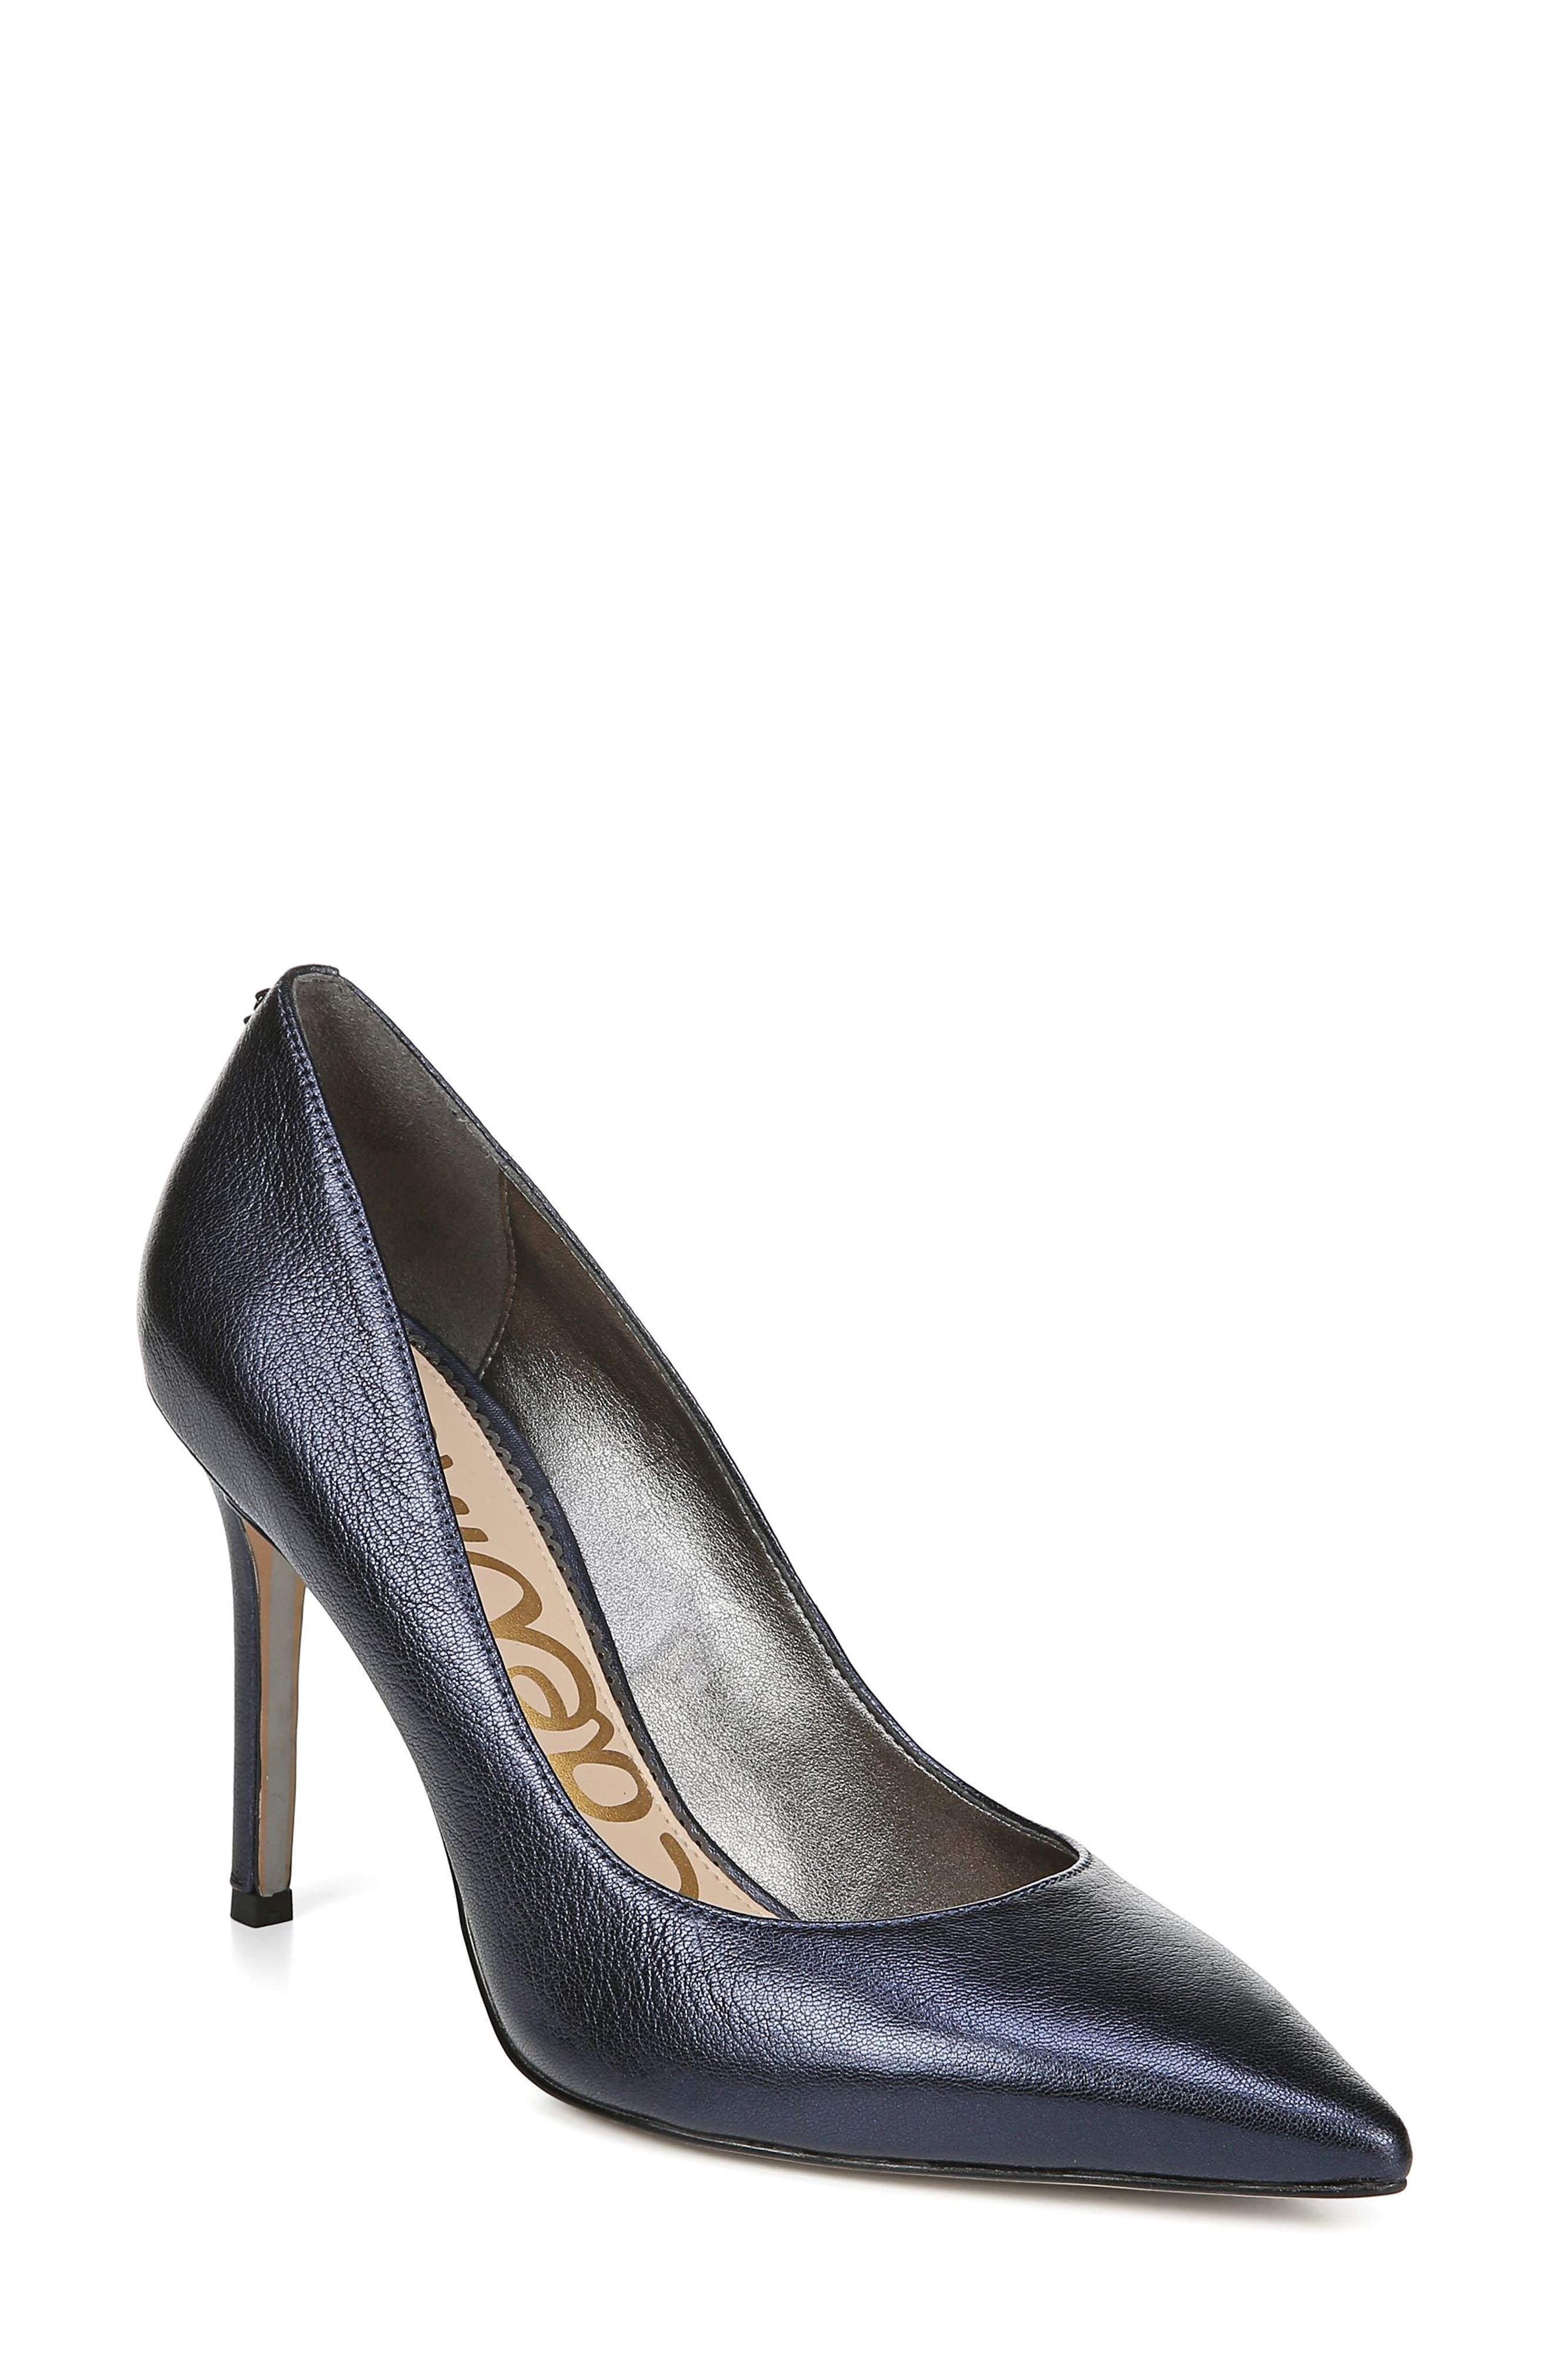 a7d46f90056 Women's Evening Heels | Nordstrom